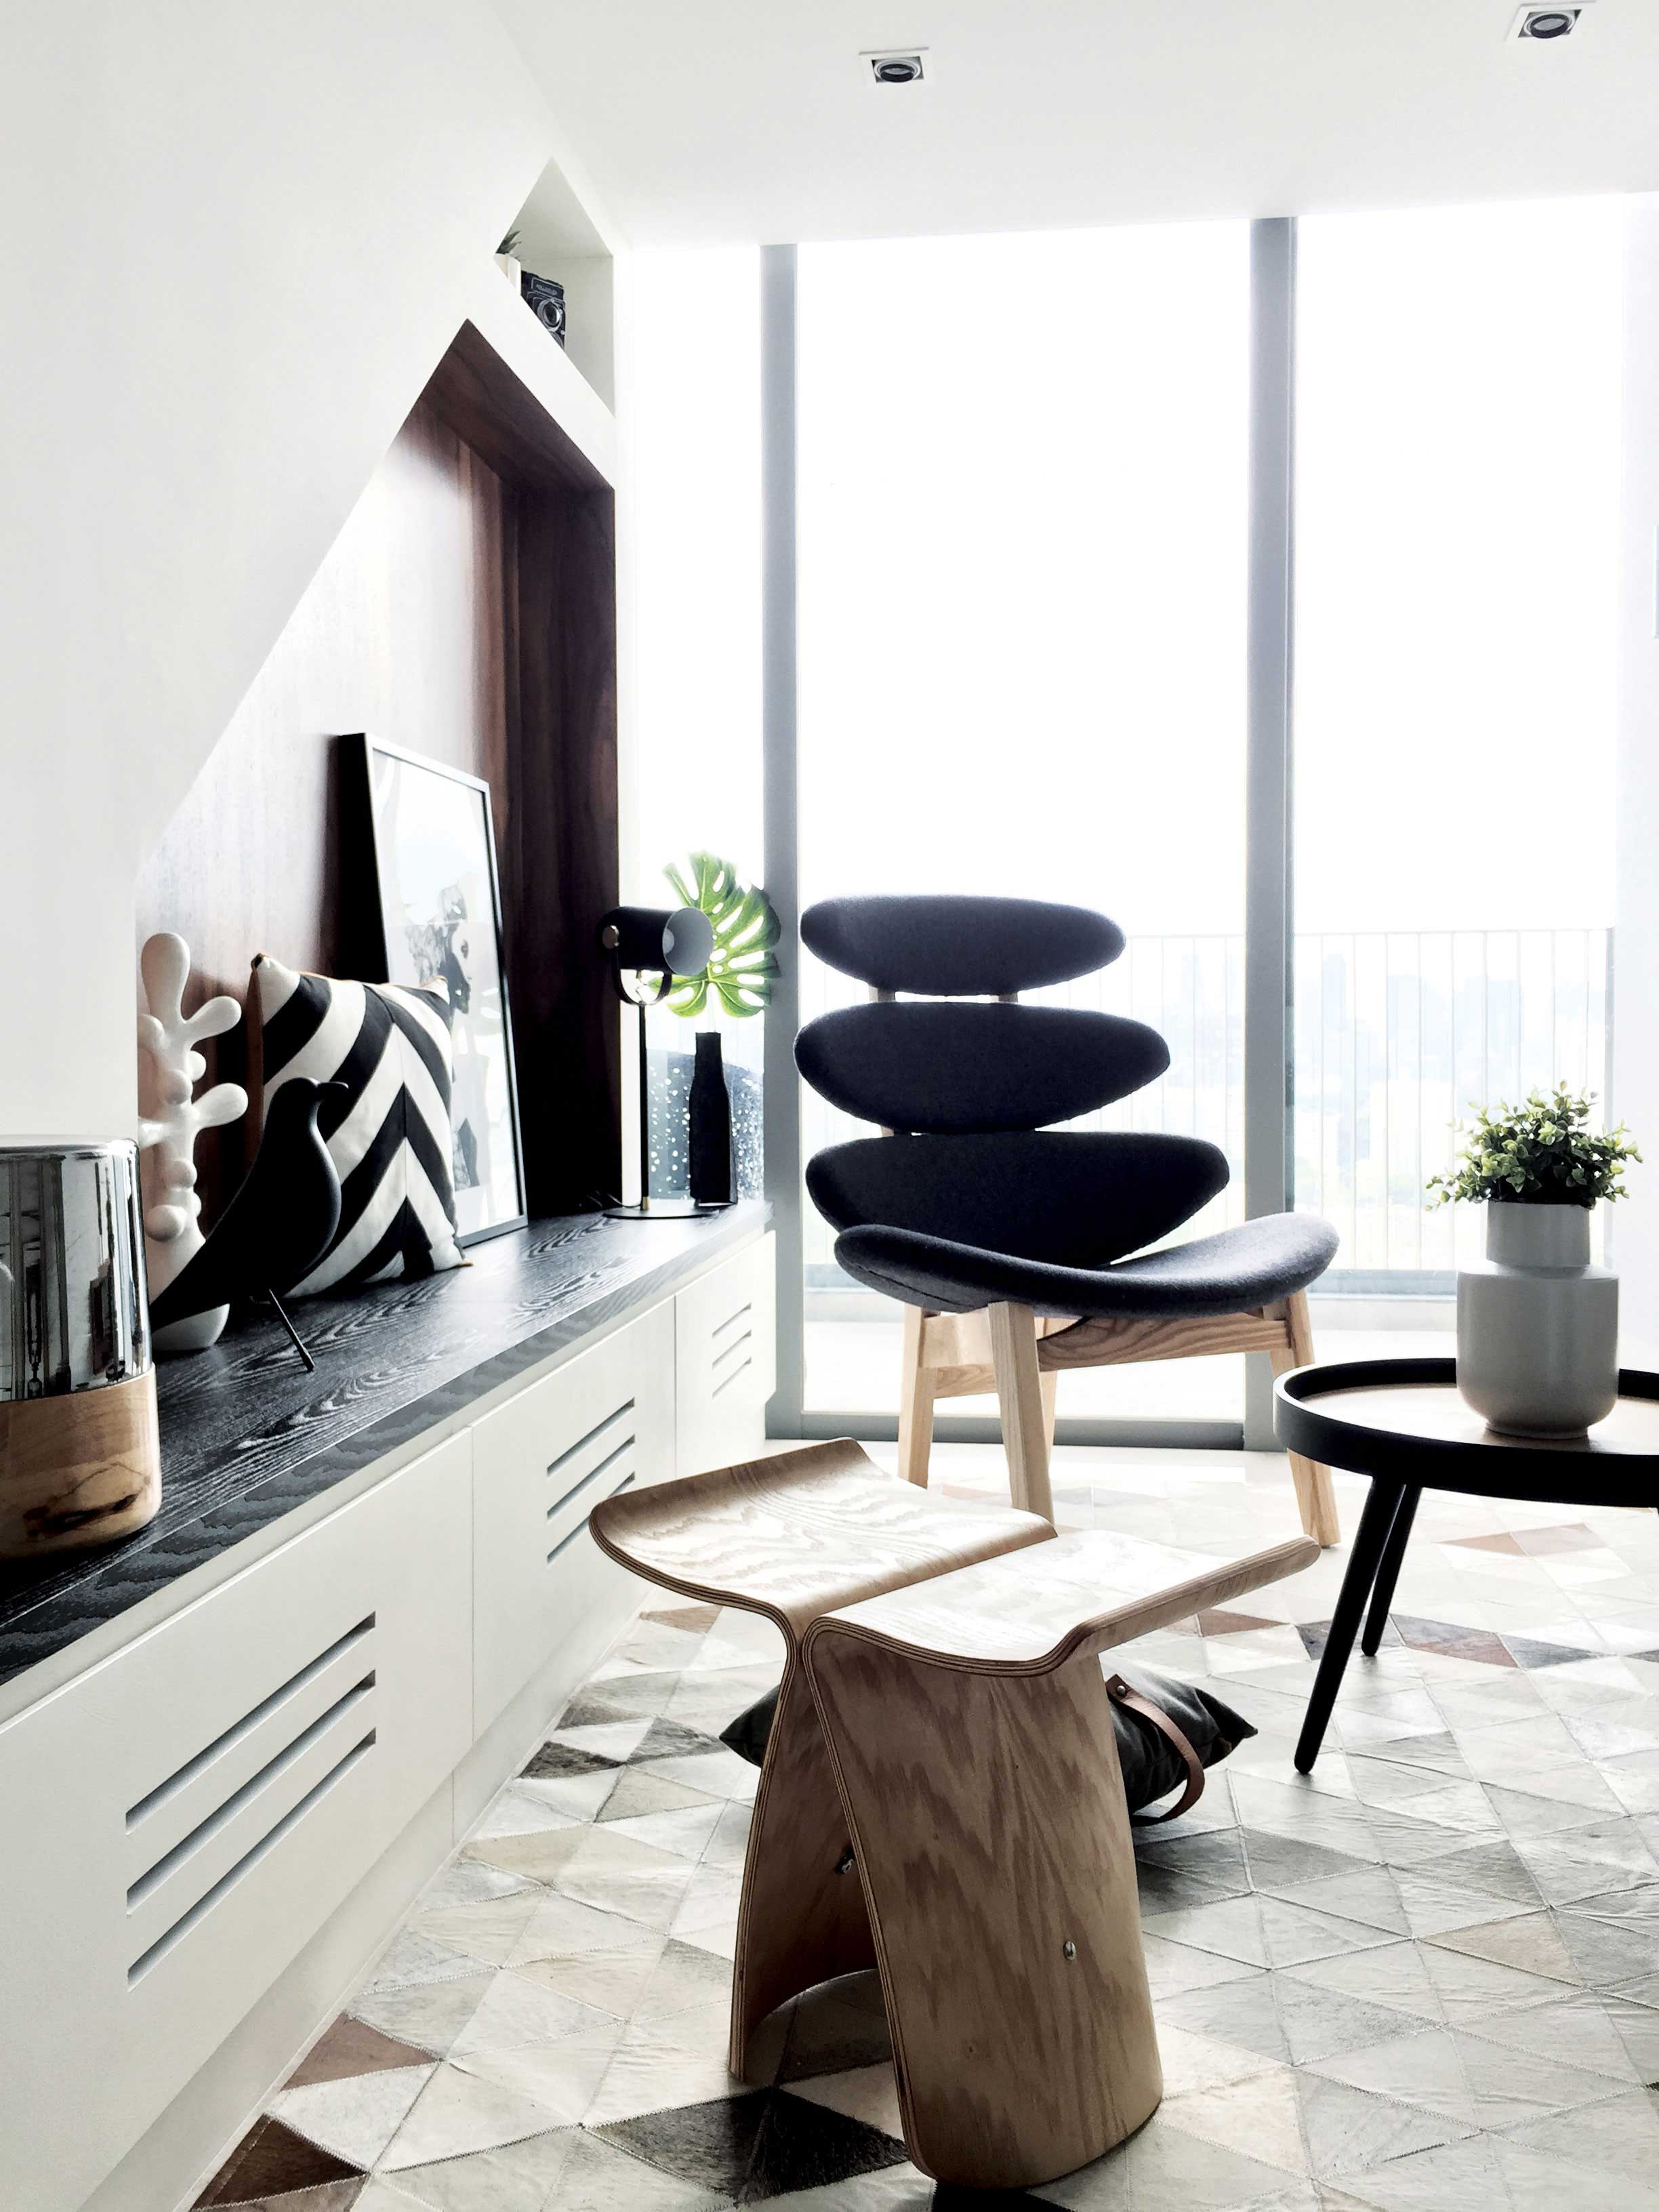 Compact yet chic living room dressed in monochrome hues.